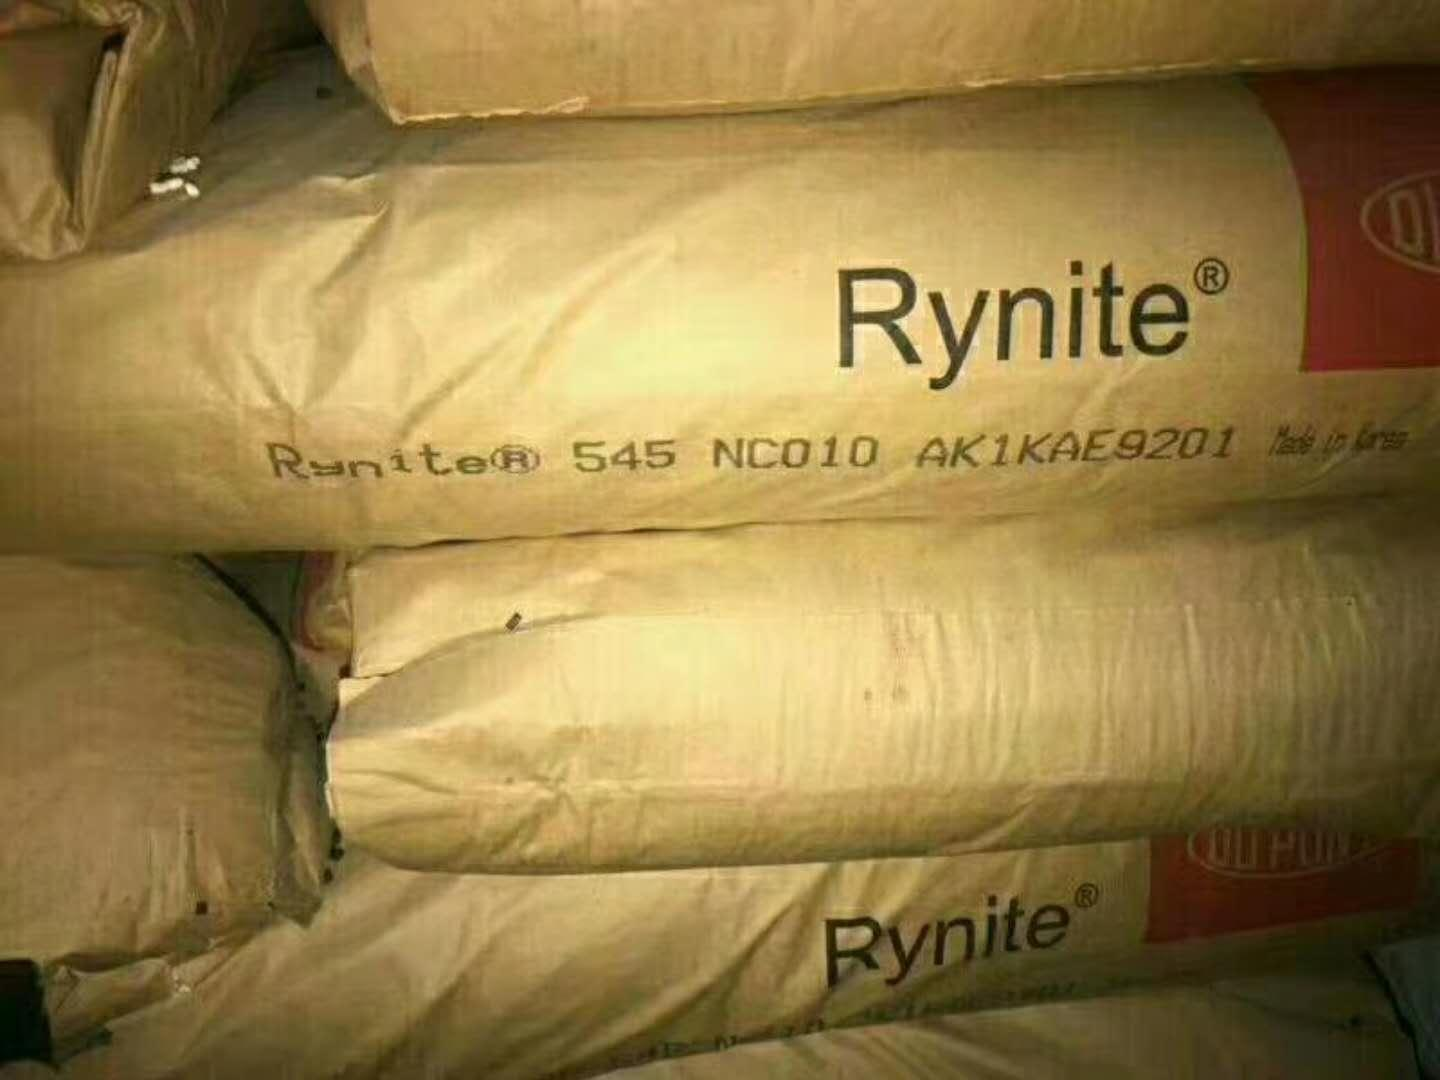 RYNITE 545 NC010(45% glass fibre reinforced polyester resin)